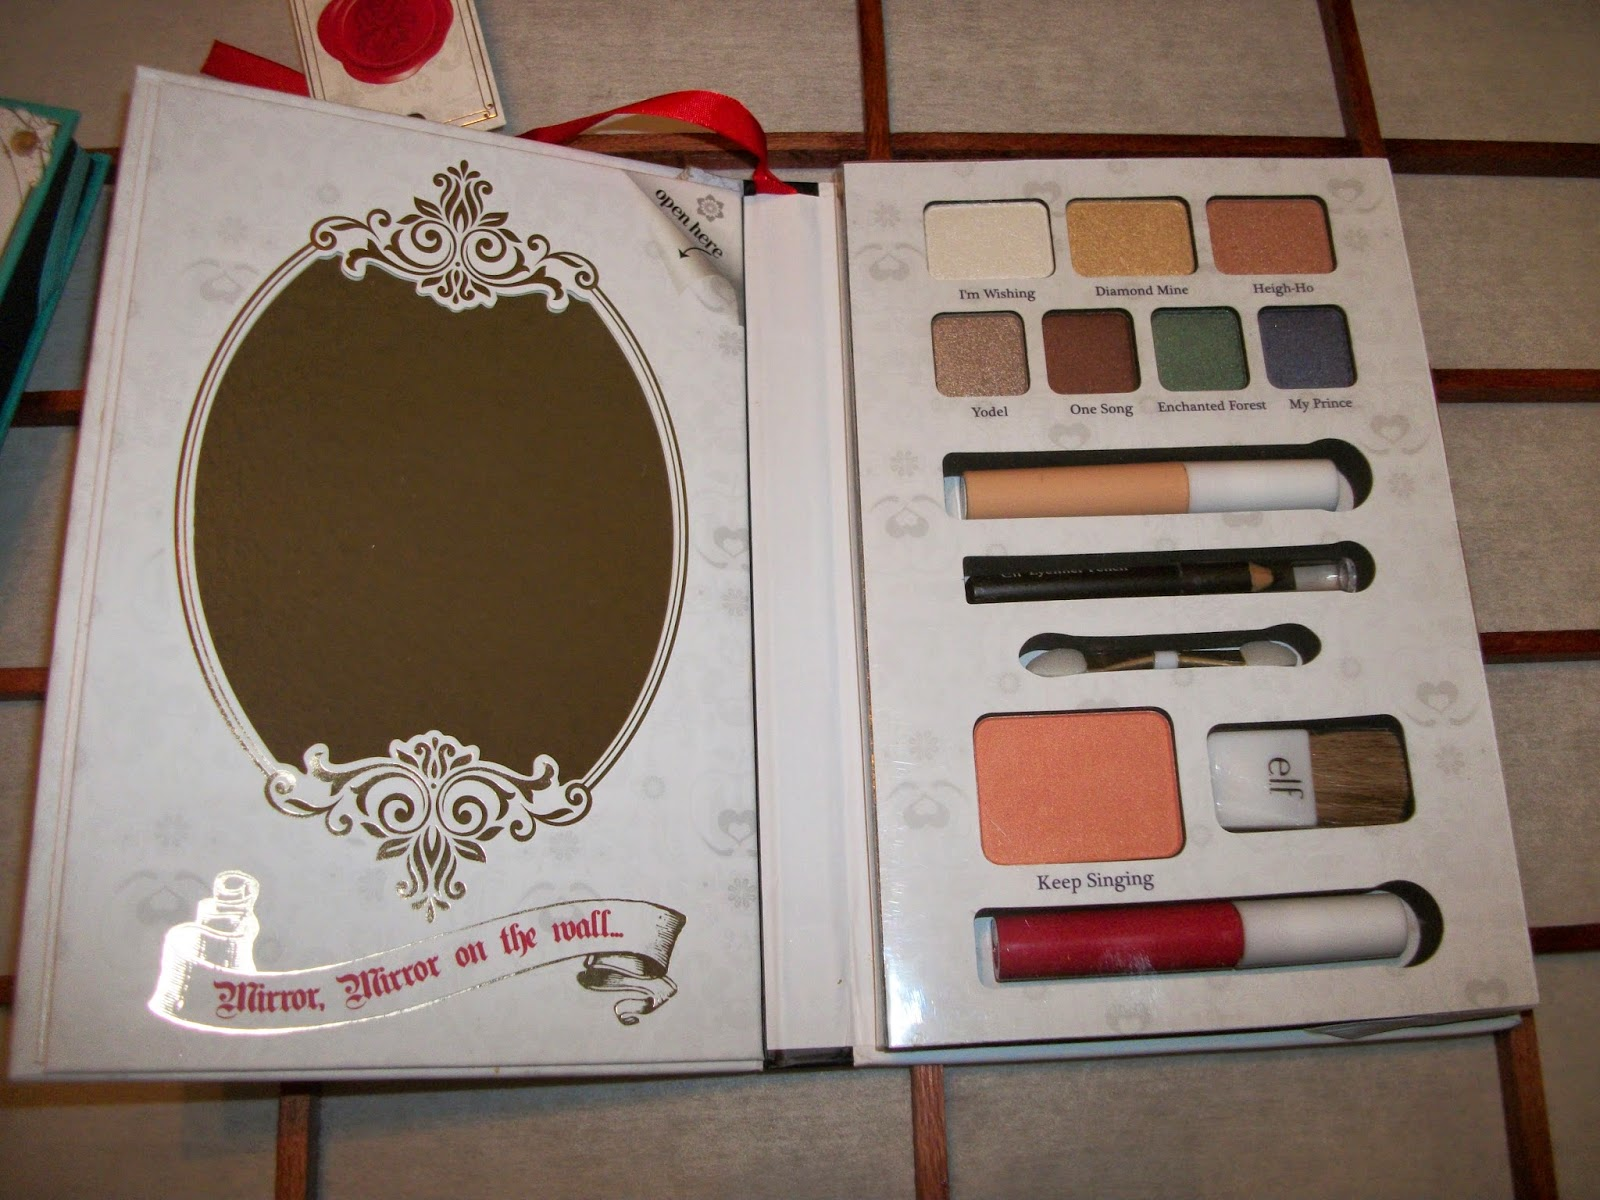 Inside the elf Fairest of Them All Palette